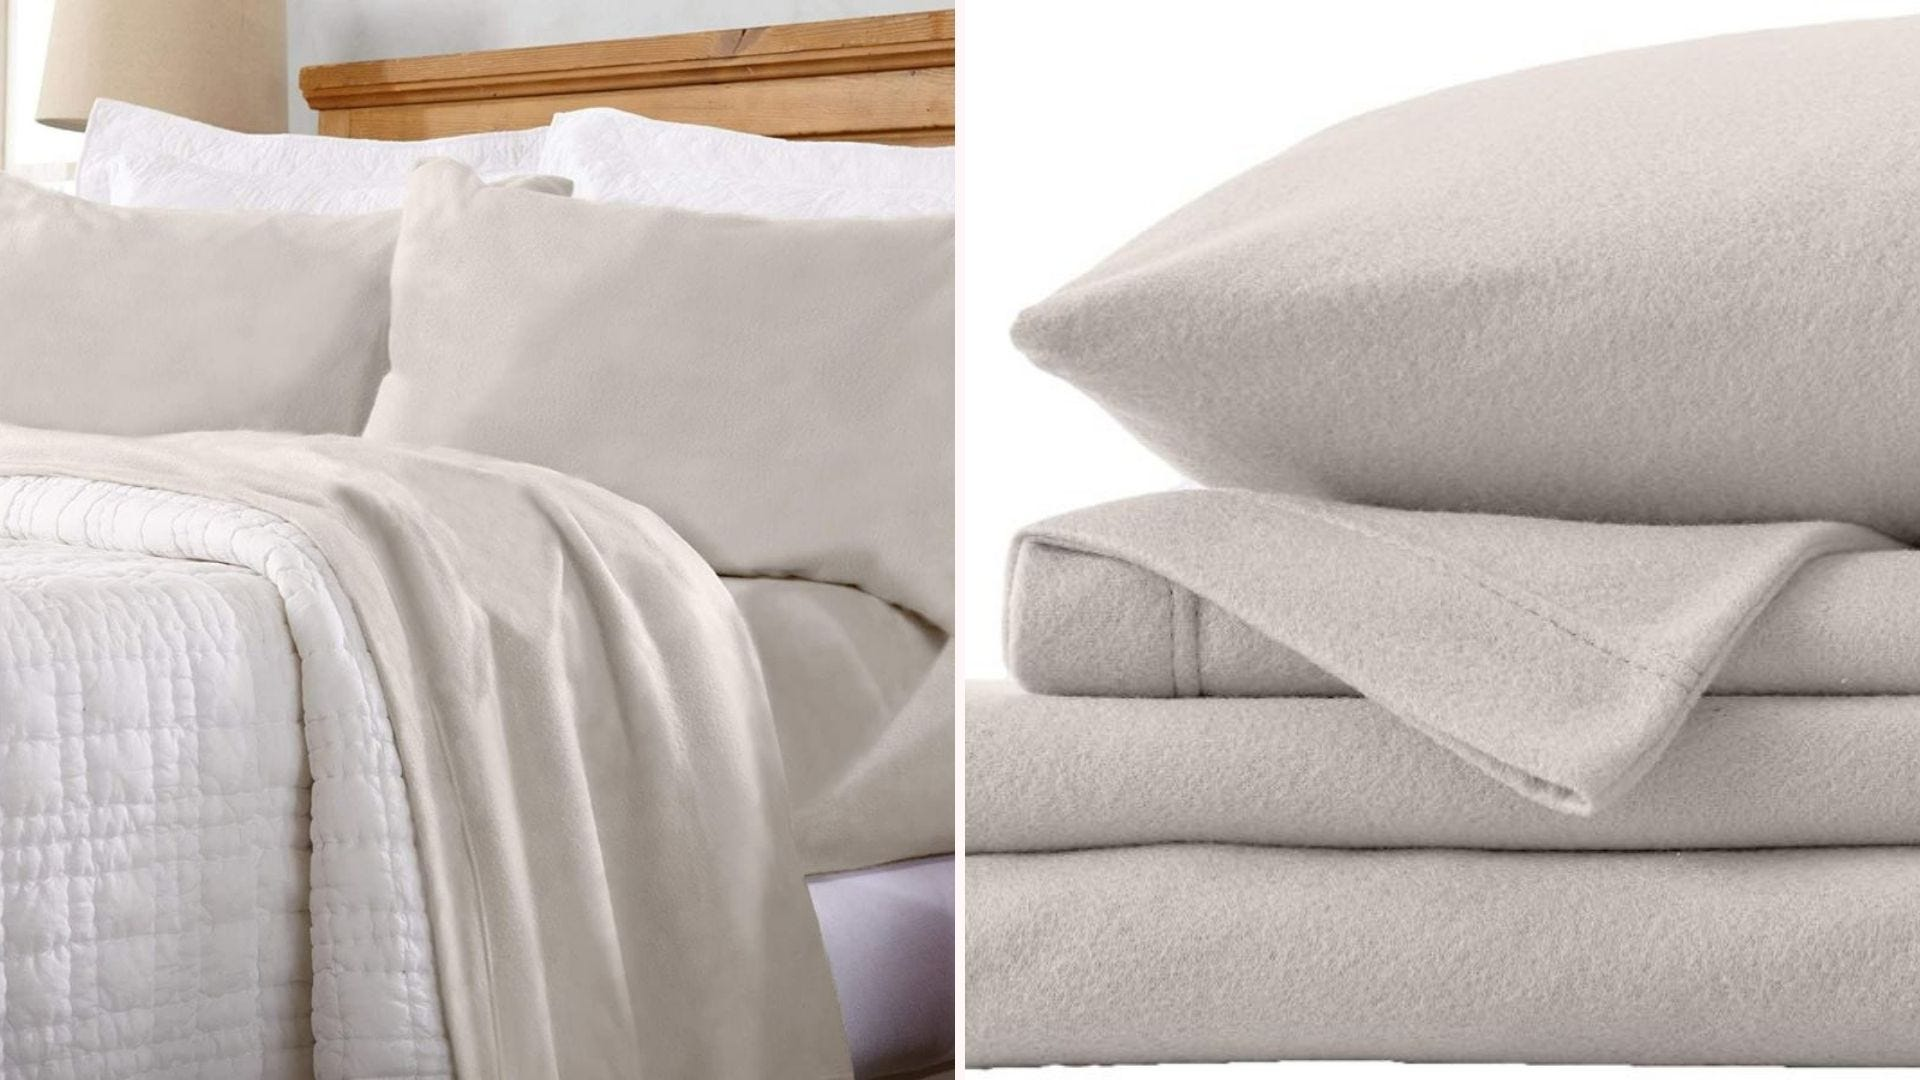 Great Bay Home Ivory Sheets on a bed and a set folded and stacked.